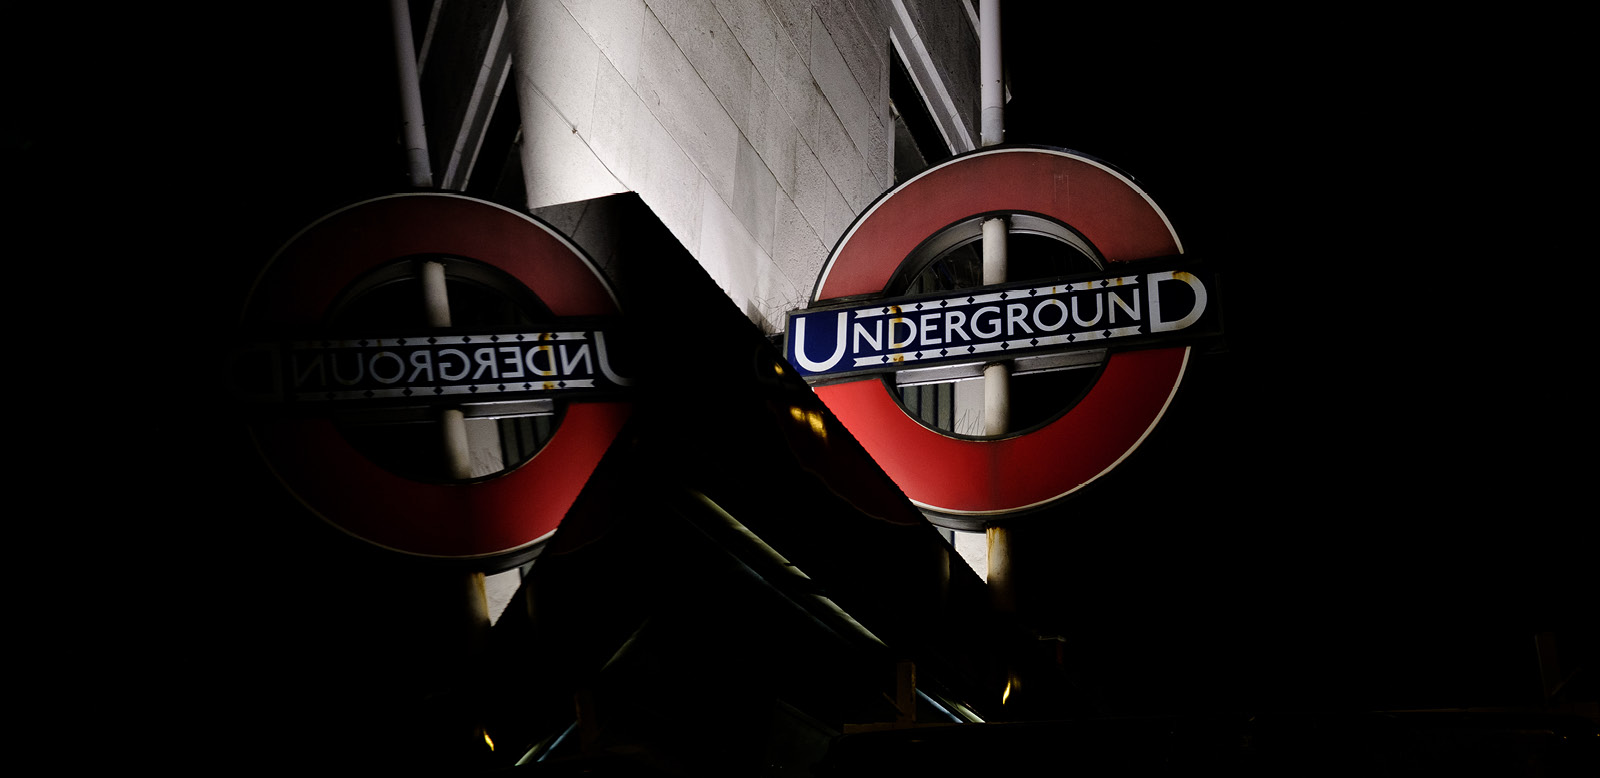 24 Hours on the London Underground Night Tube Service